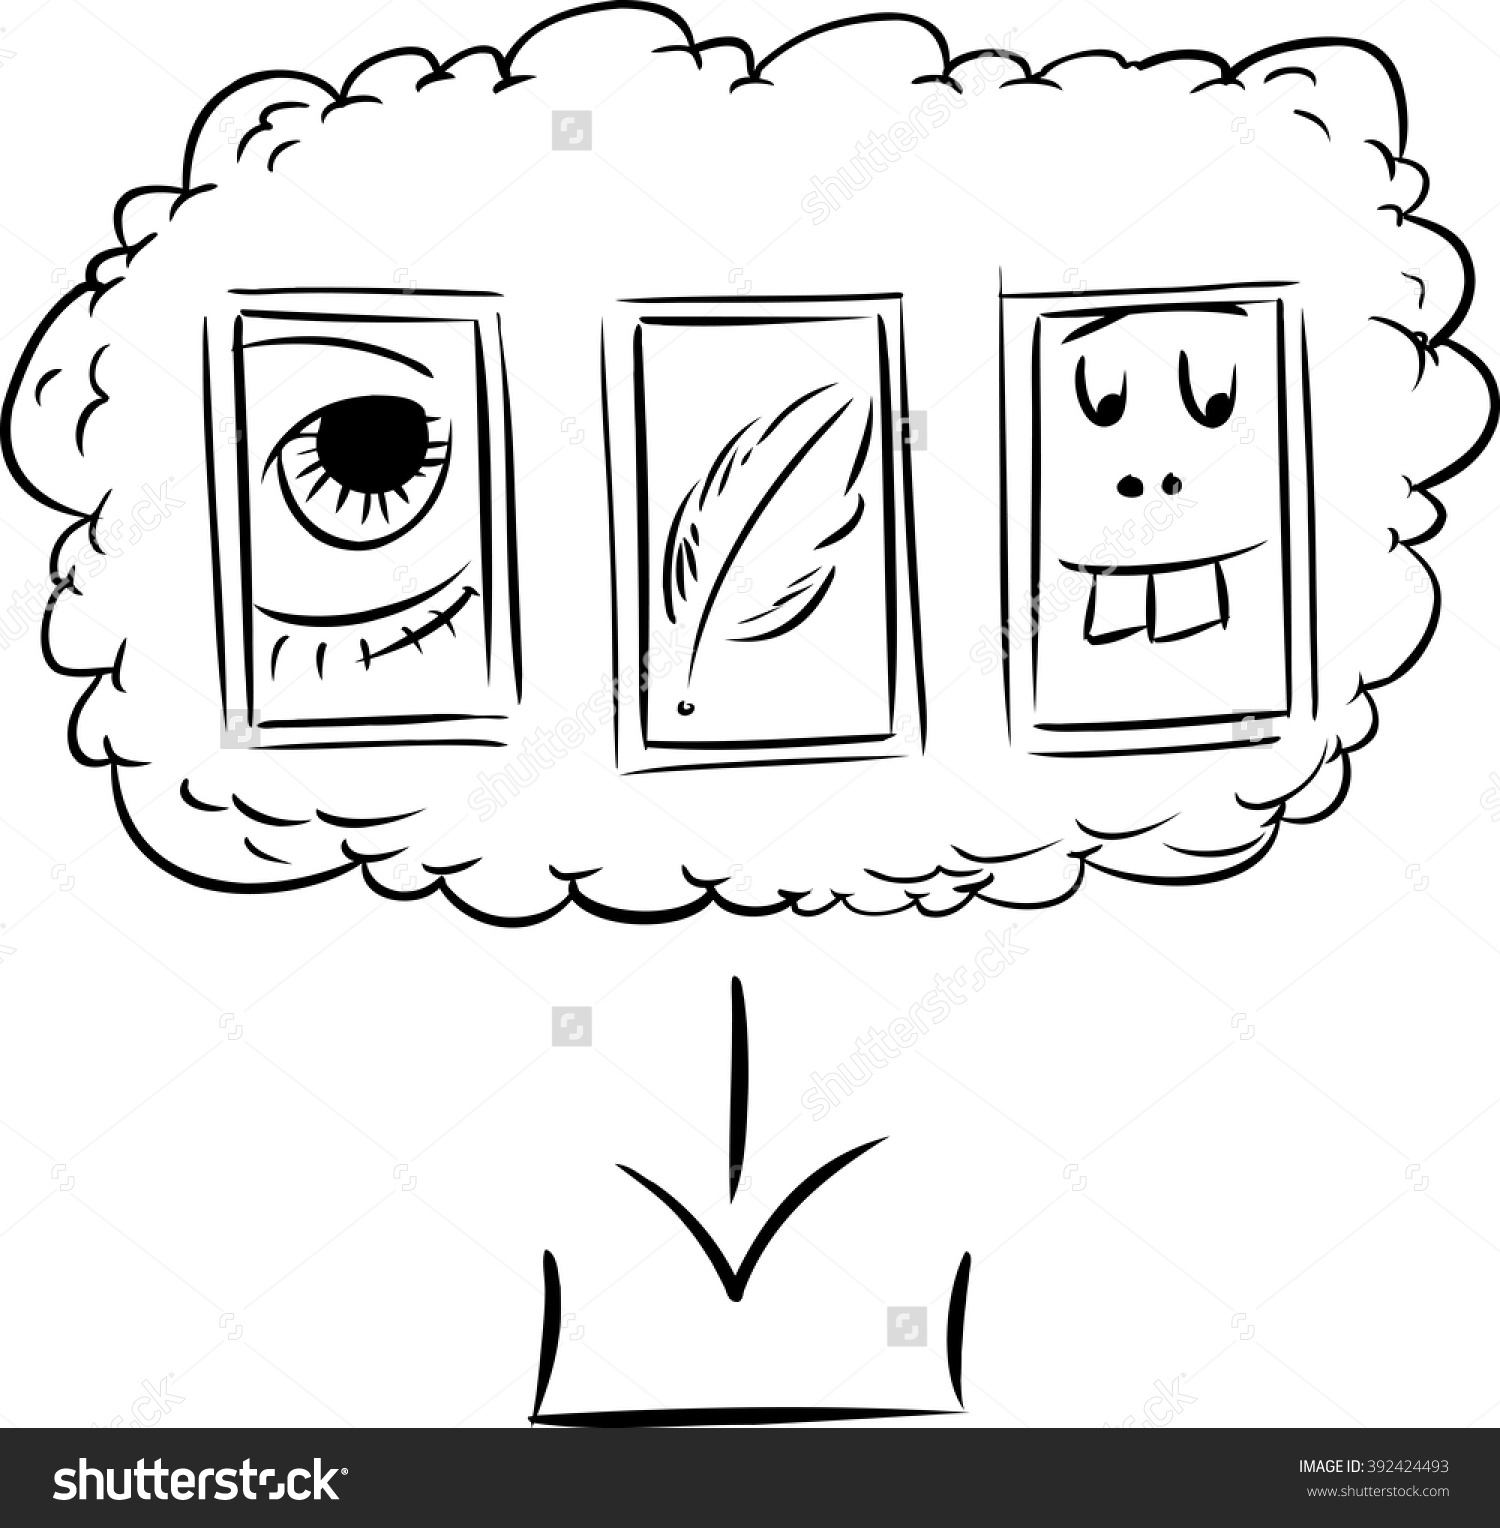 Outline Doodle Of Silly Icons As Files In Computer Server Cloud.